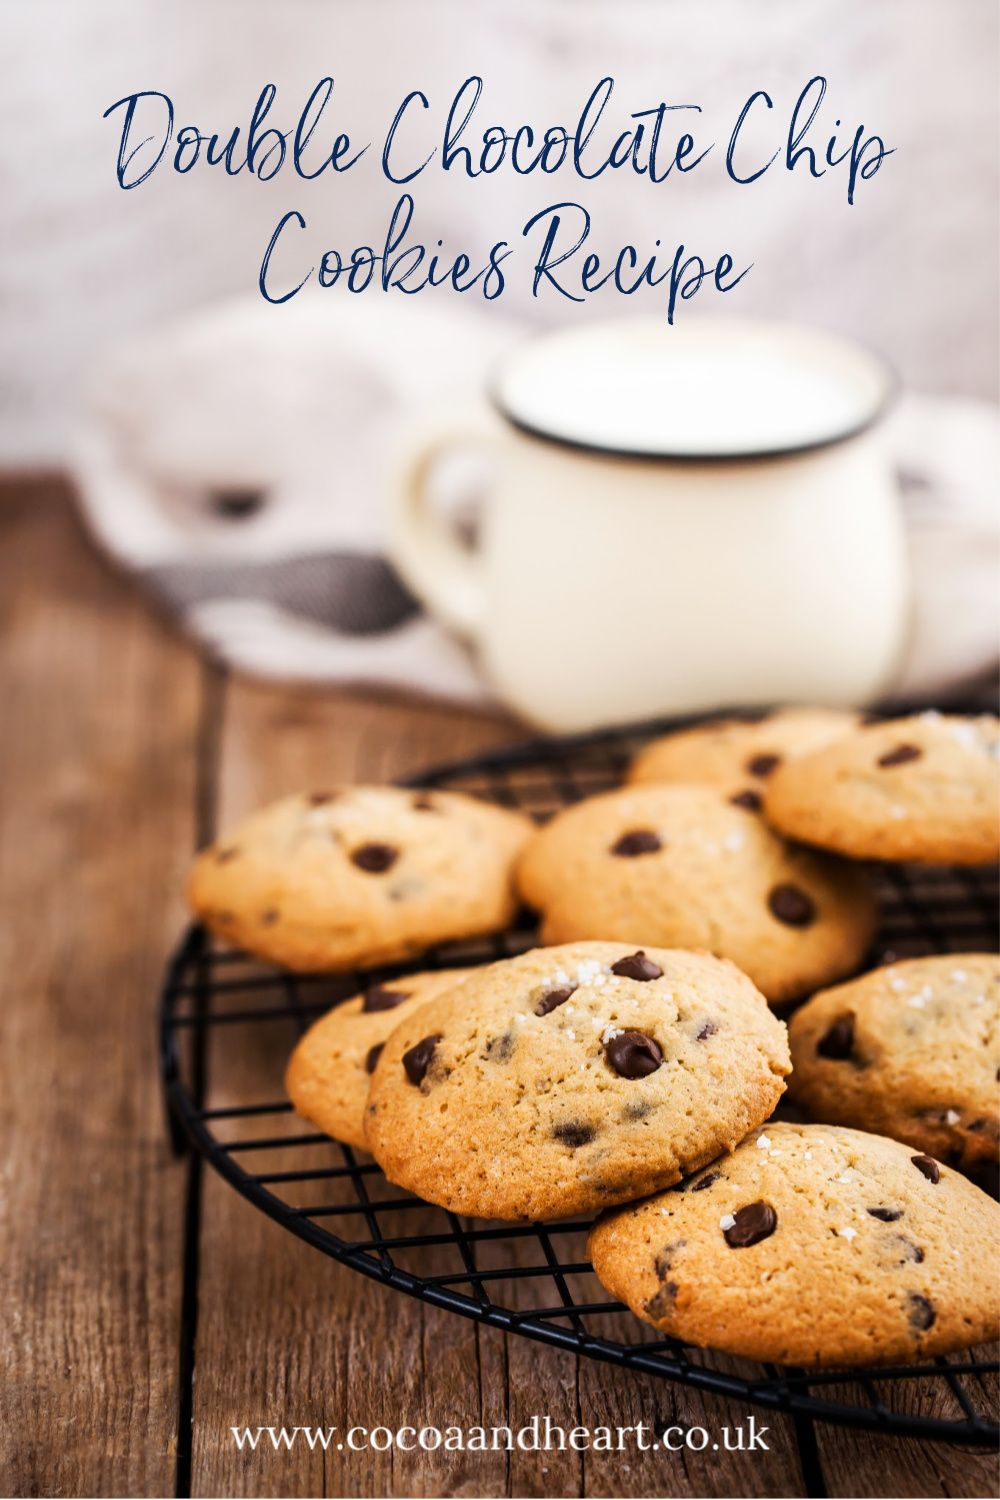 Homemade Chocolate Chips Cookies Recipe